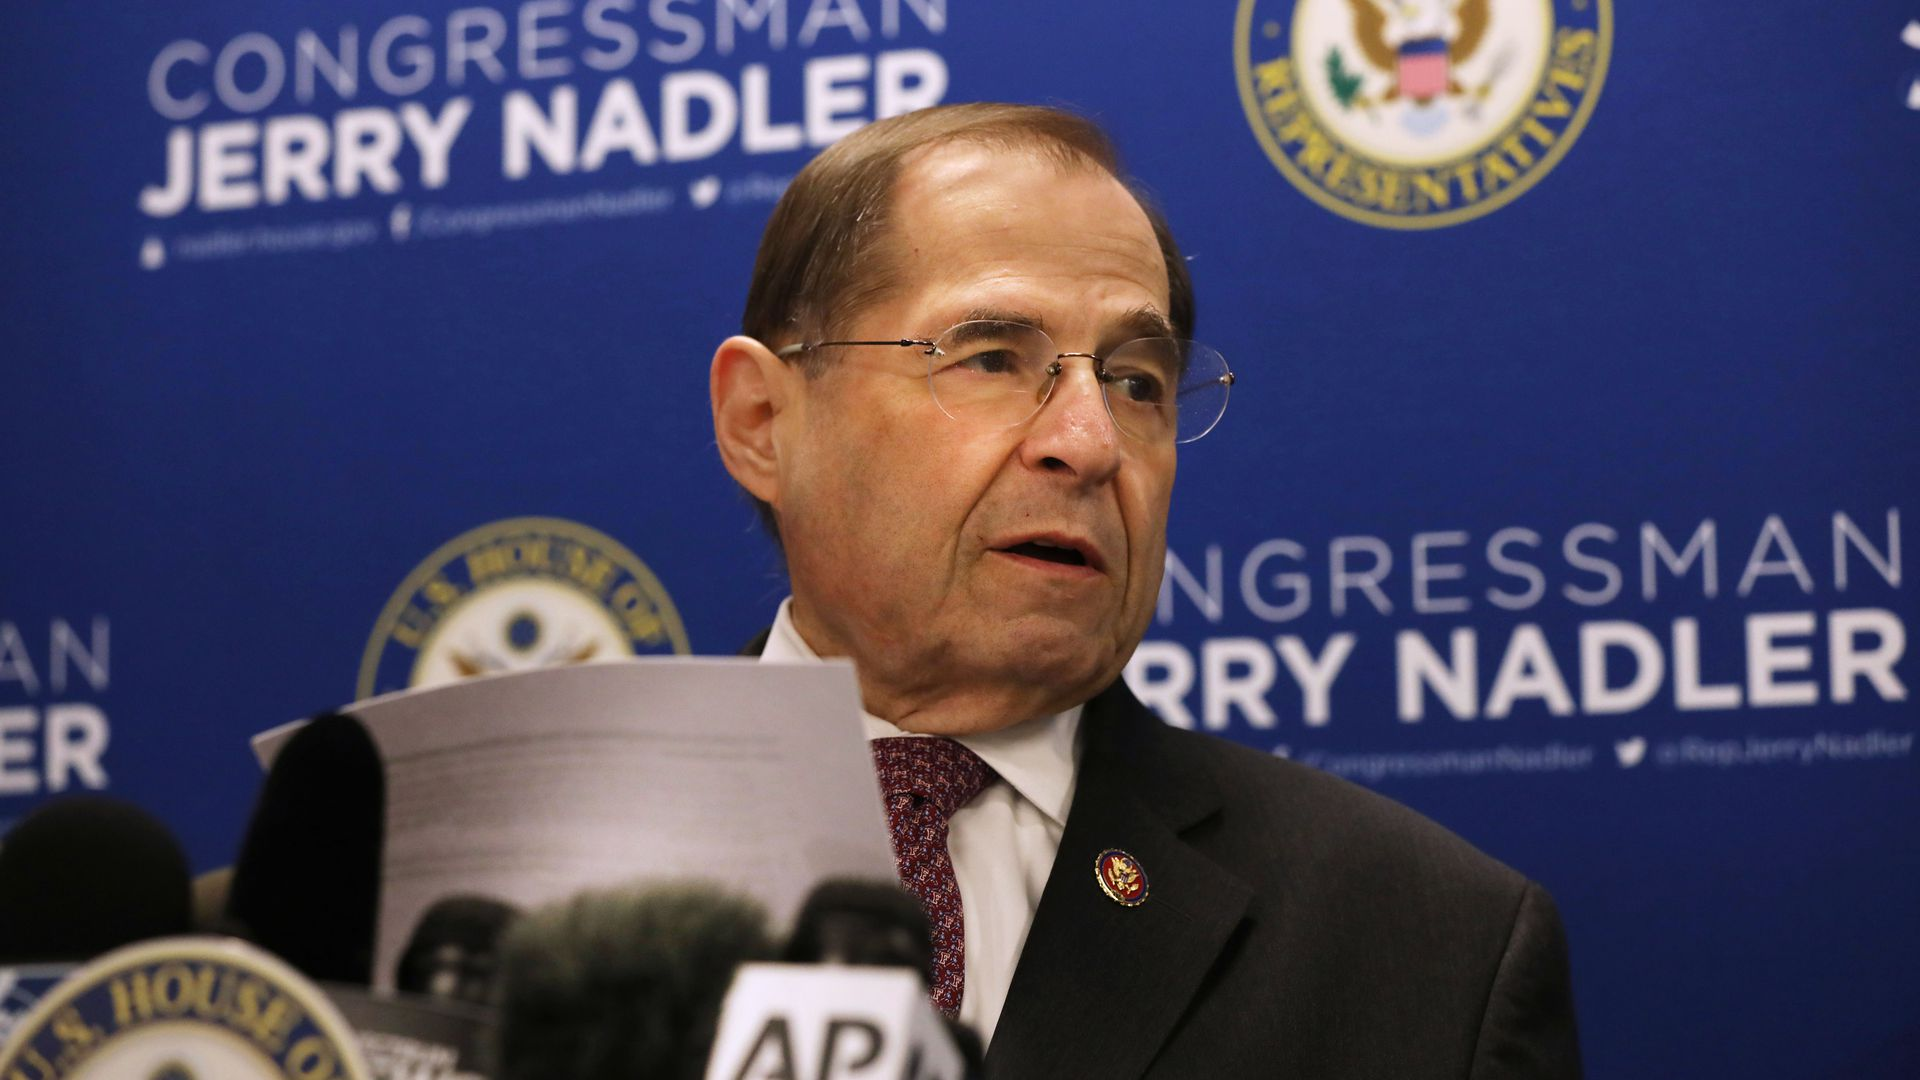 House Judiciary Committee Chairman Jerrold Nadler.